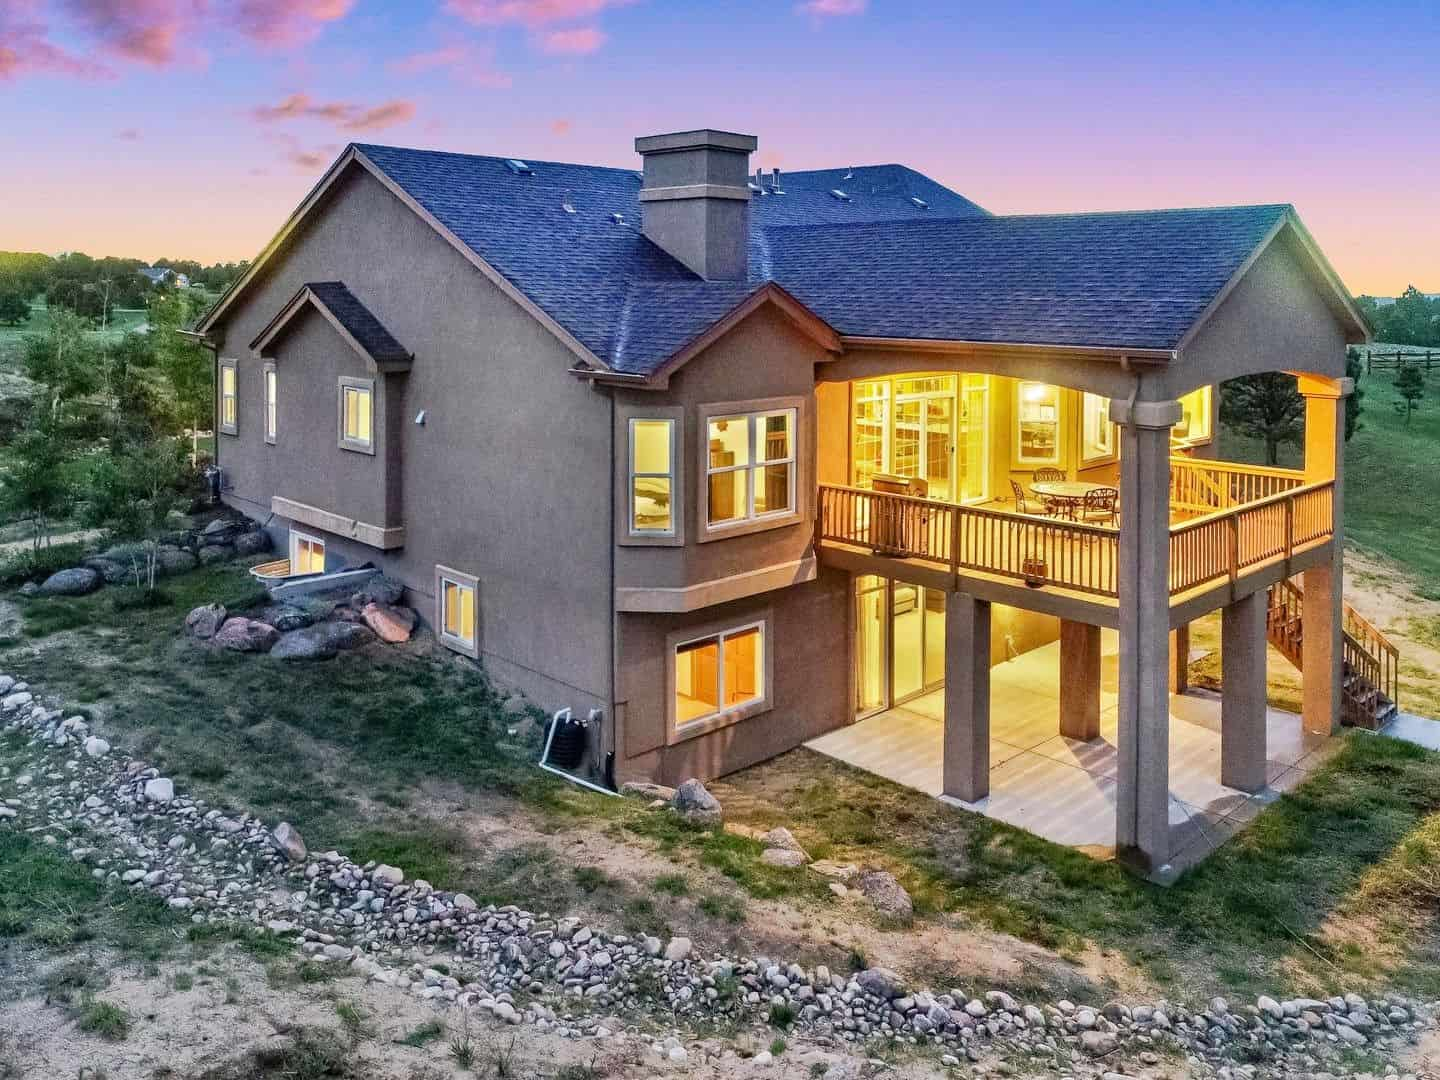 Sunset Views of Rear Covered Deck and Covered Patio